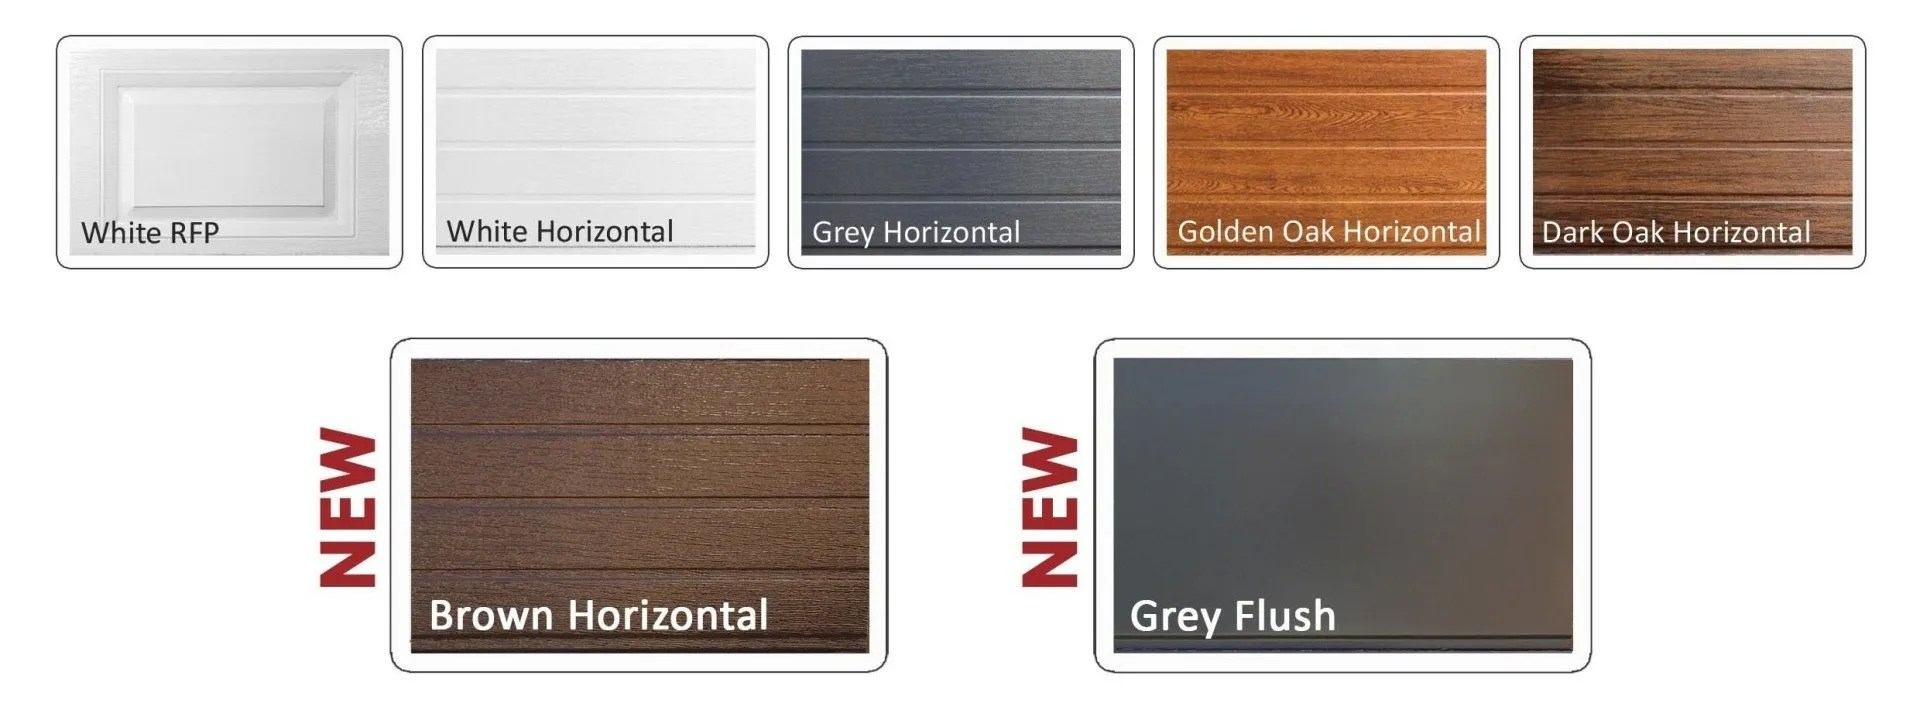 Collage of insulated steel sectional door styles